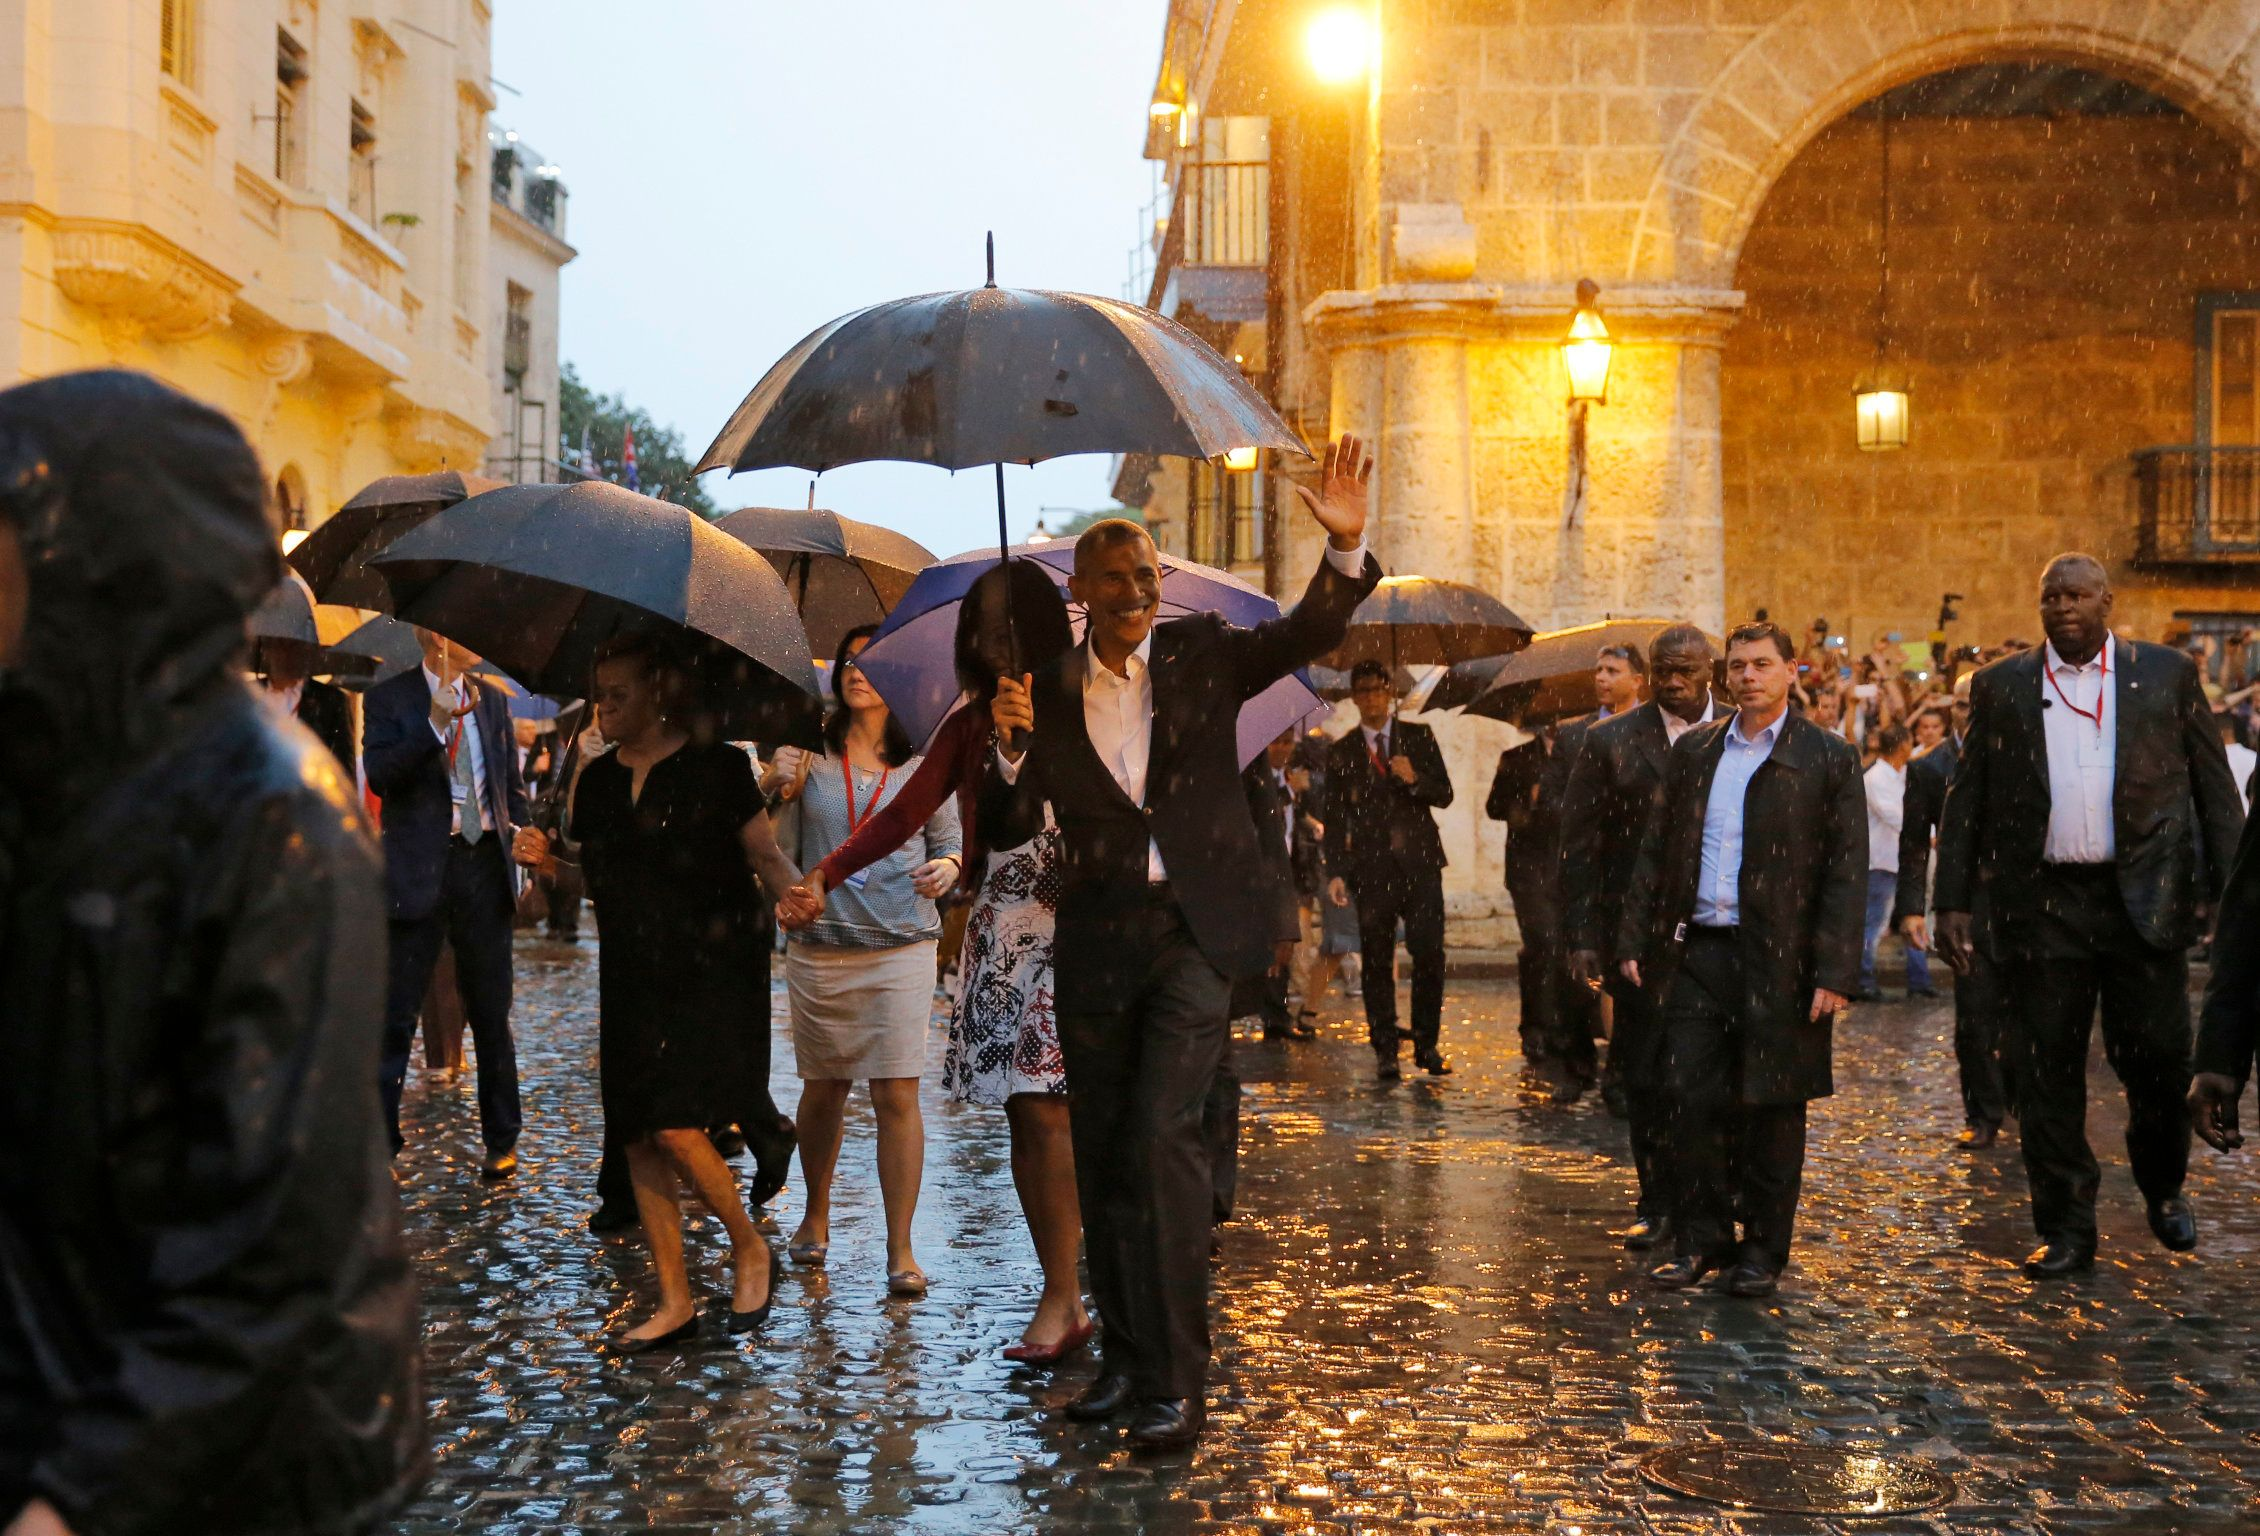 U.S. President Barack Obama and his wife Michelle tour Old Havana at the start of a three-day visit, in Havana March 20, 2016.  REUTERS/Carlos Barria